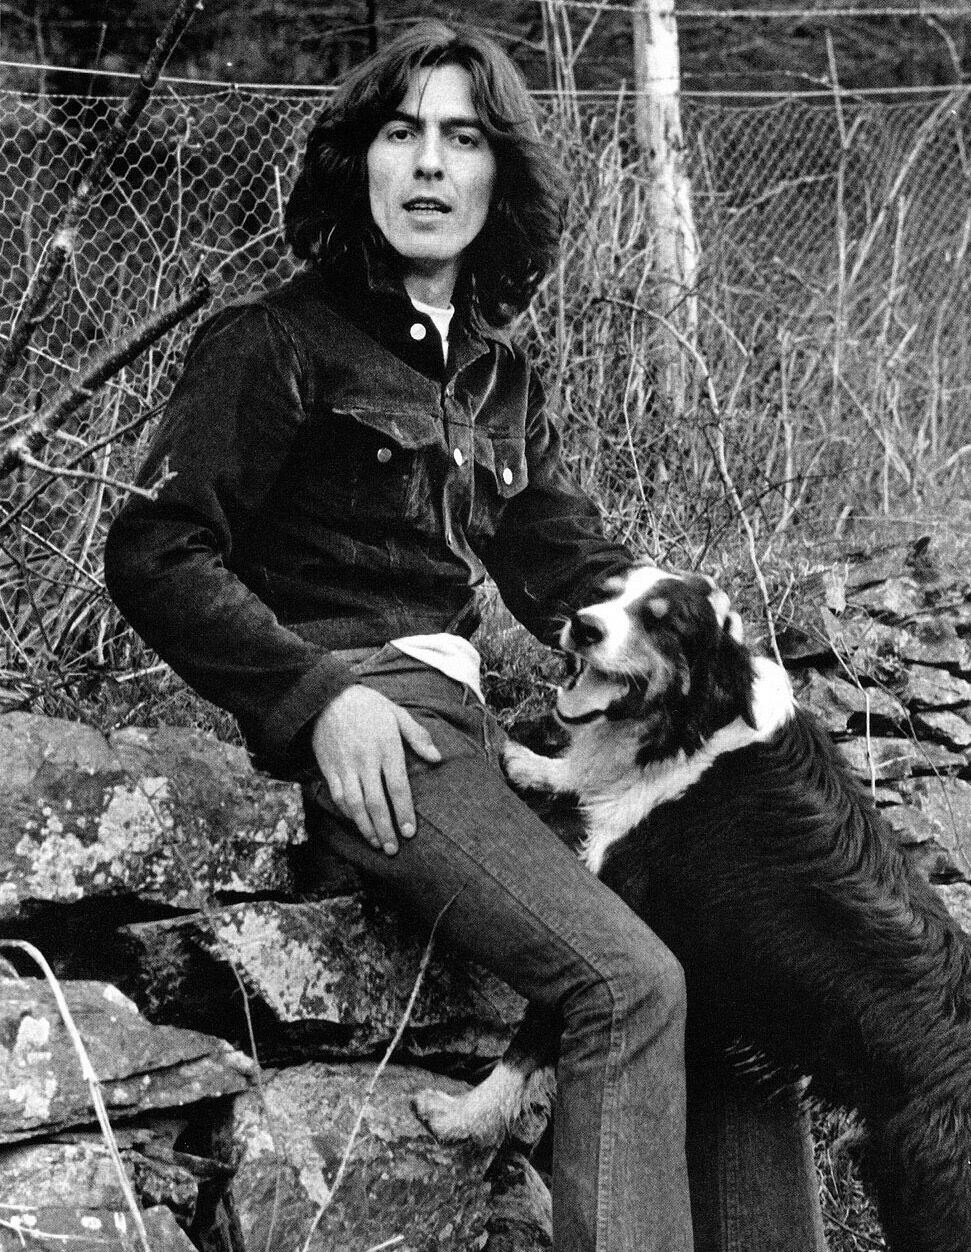 George Harrison with his dog, 1969.